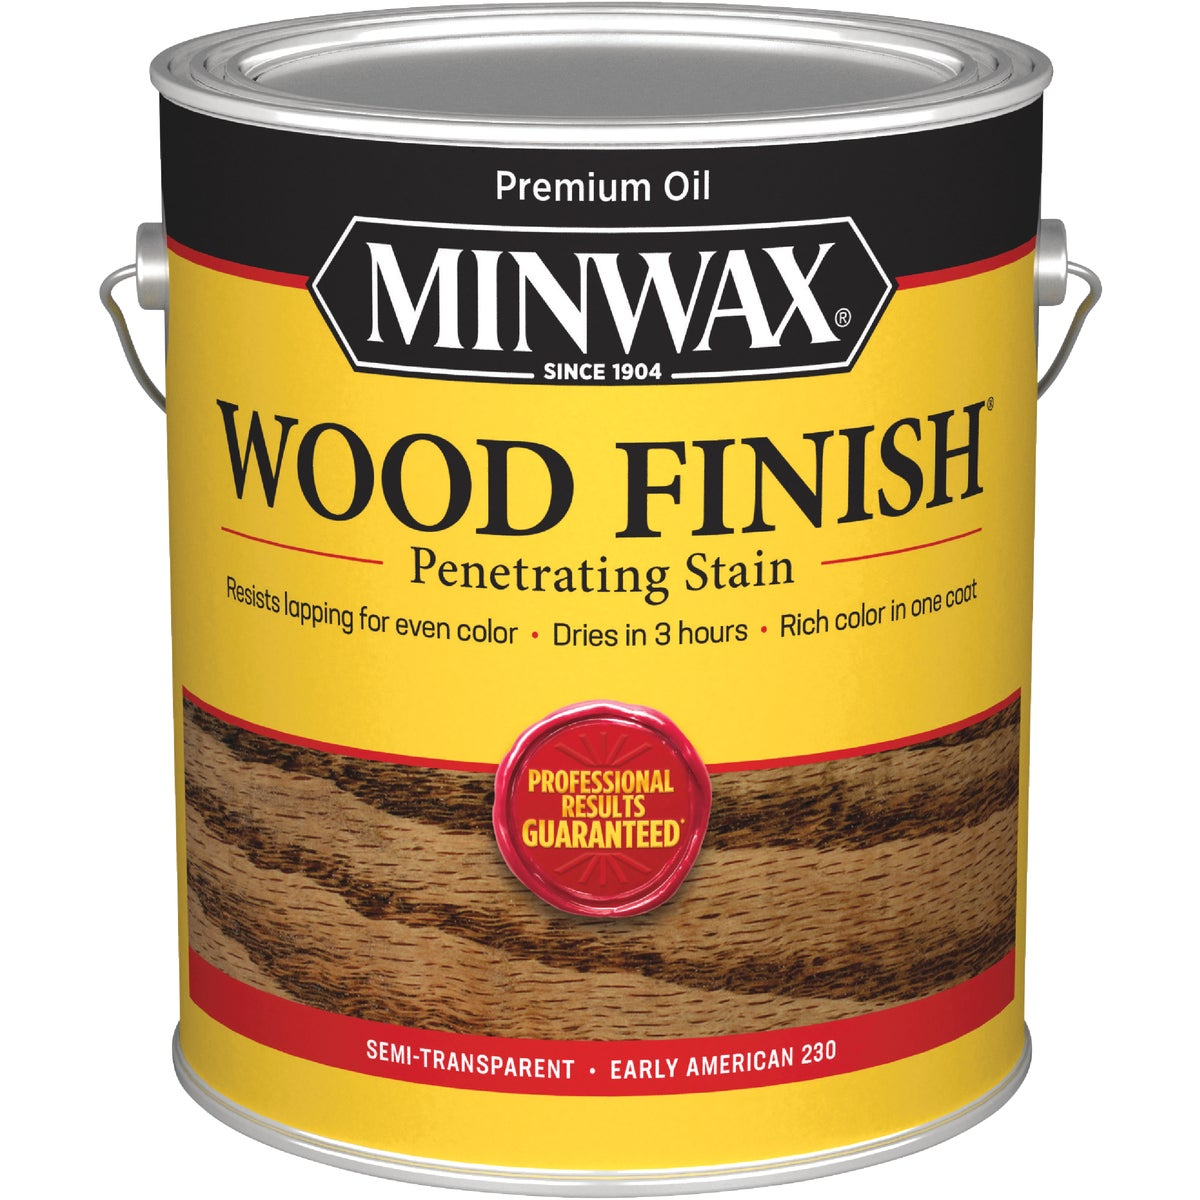 VOC ERLY AMER WOOD STAIN - 710780000 by Minwax Company